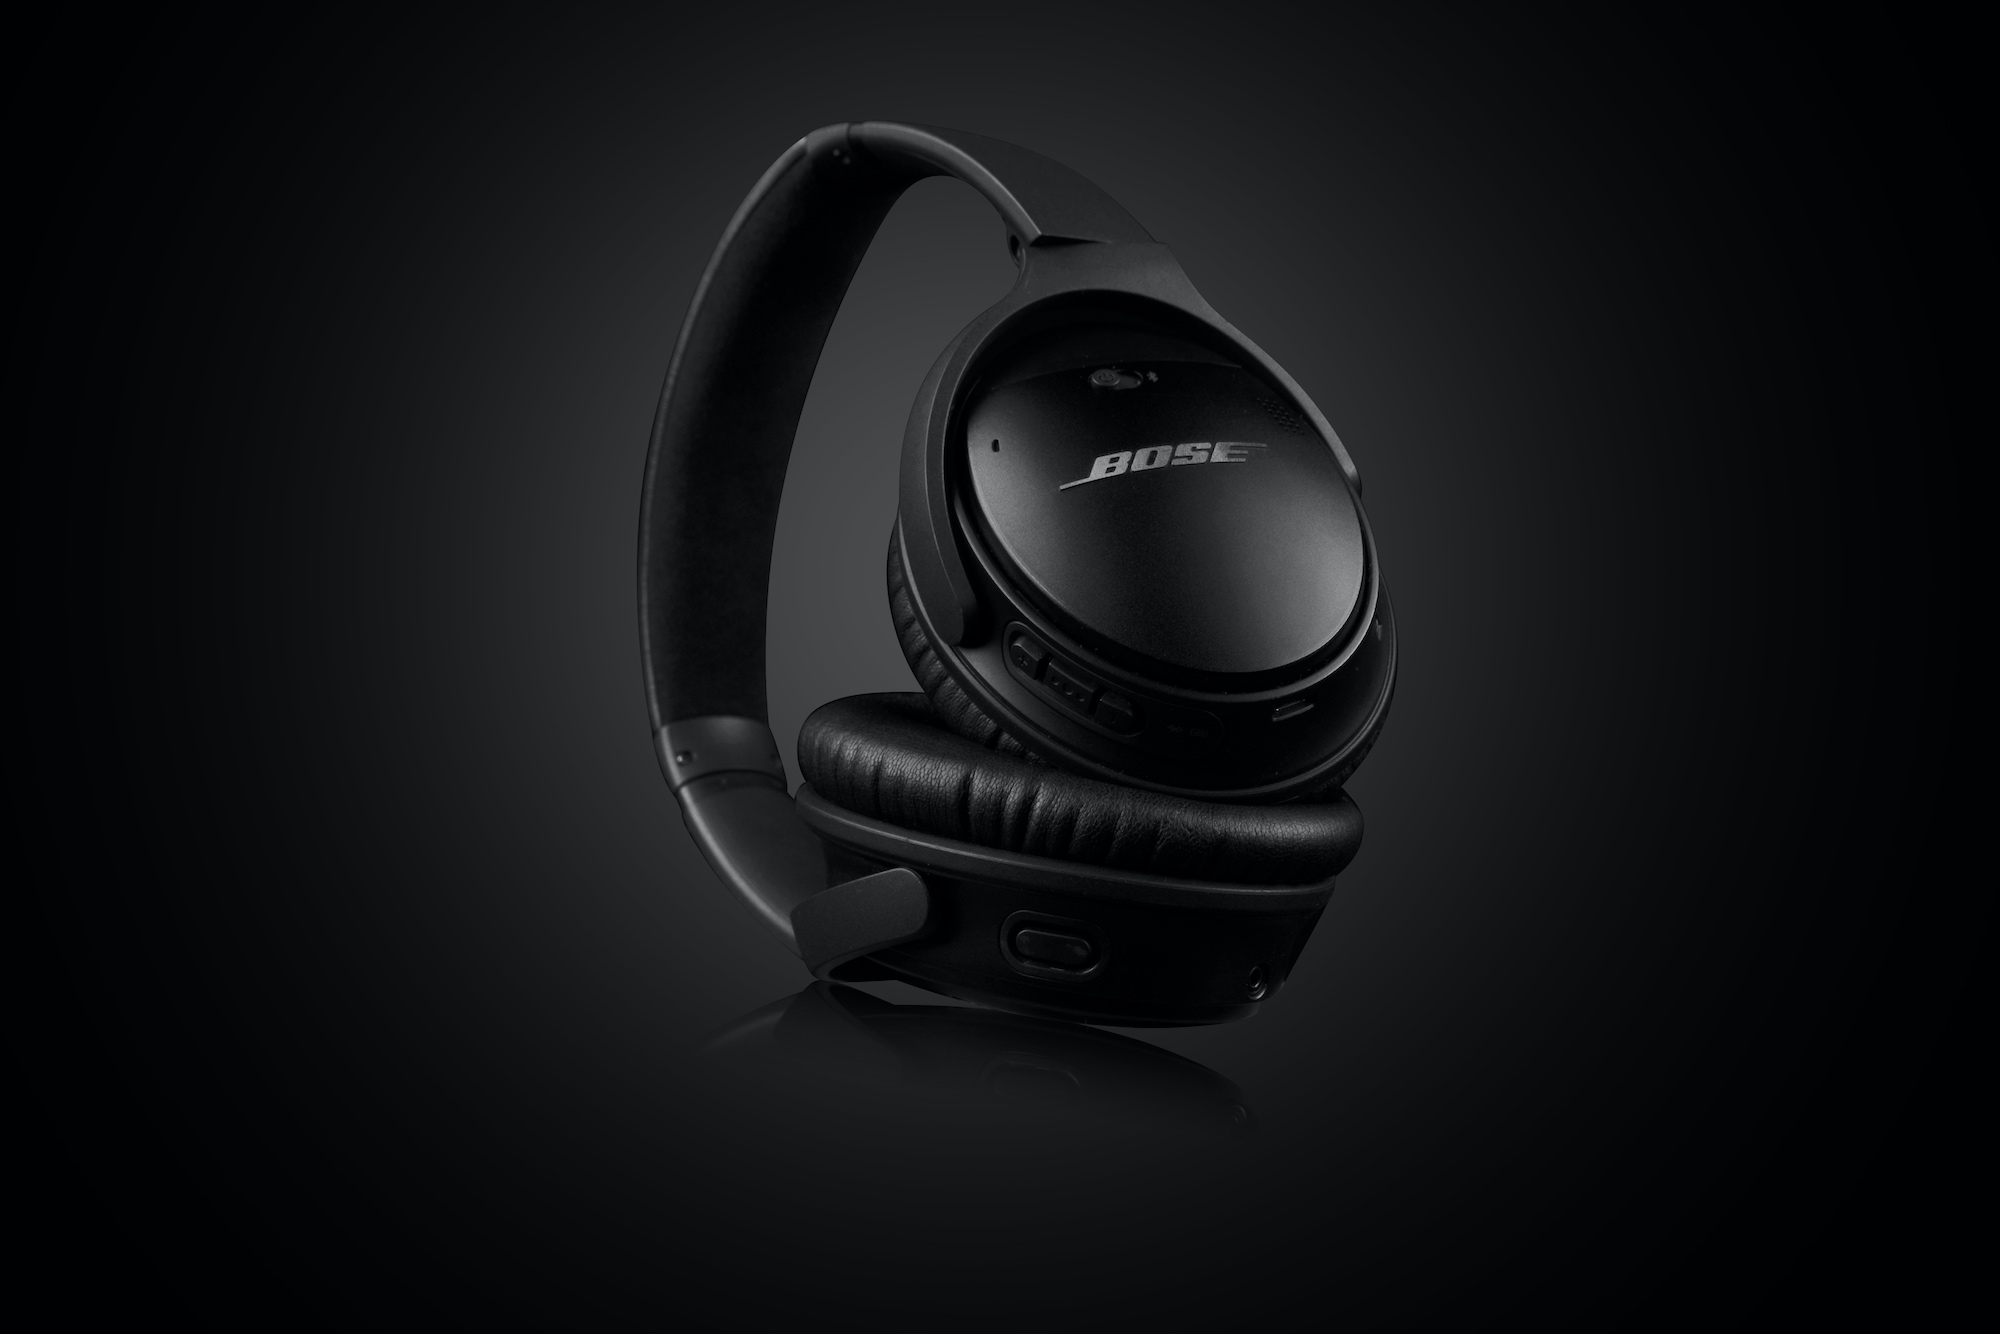 product photography services singapore studio photographer asia ecommerce Bose QuietComfort Wireless Headphones Black